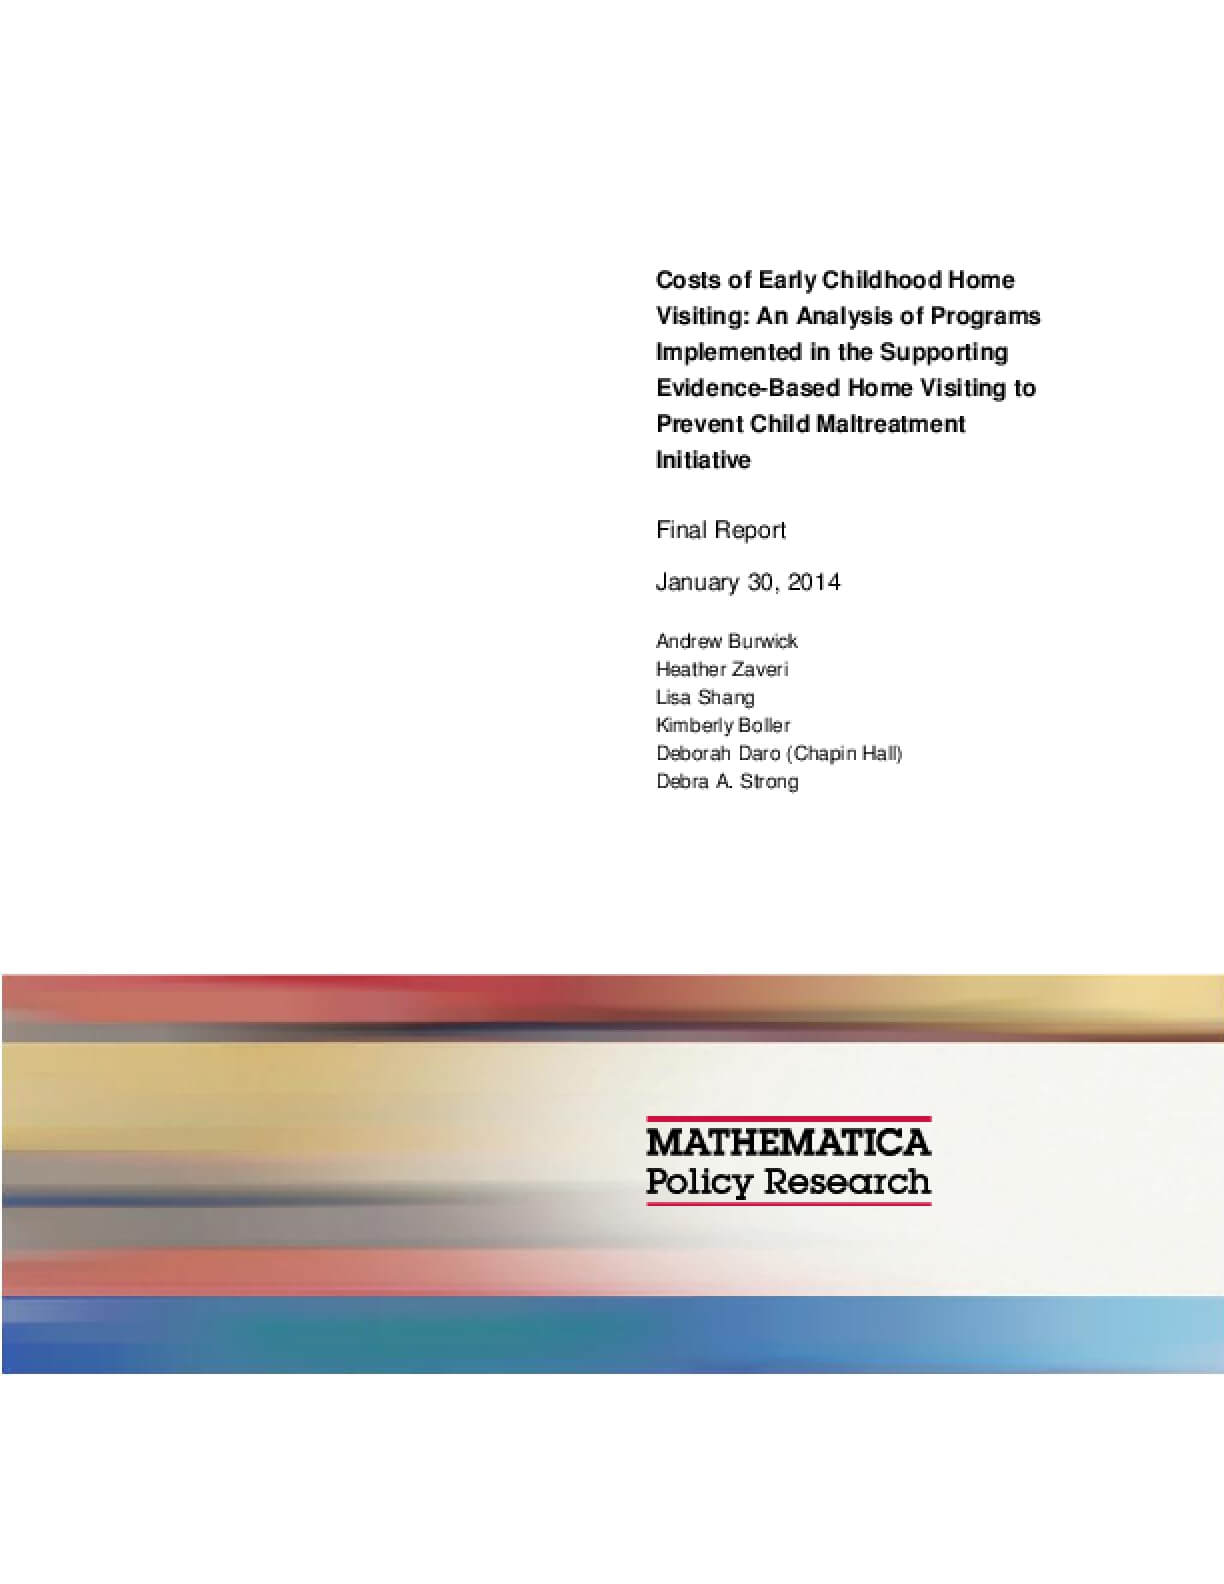 Costs of Early Childhood Home Visiting: An Analysis of Programs Implemented in the Supporting Evidence-Based Home Visiting to Prevent Child Maltreatment Initiative